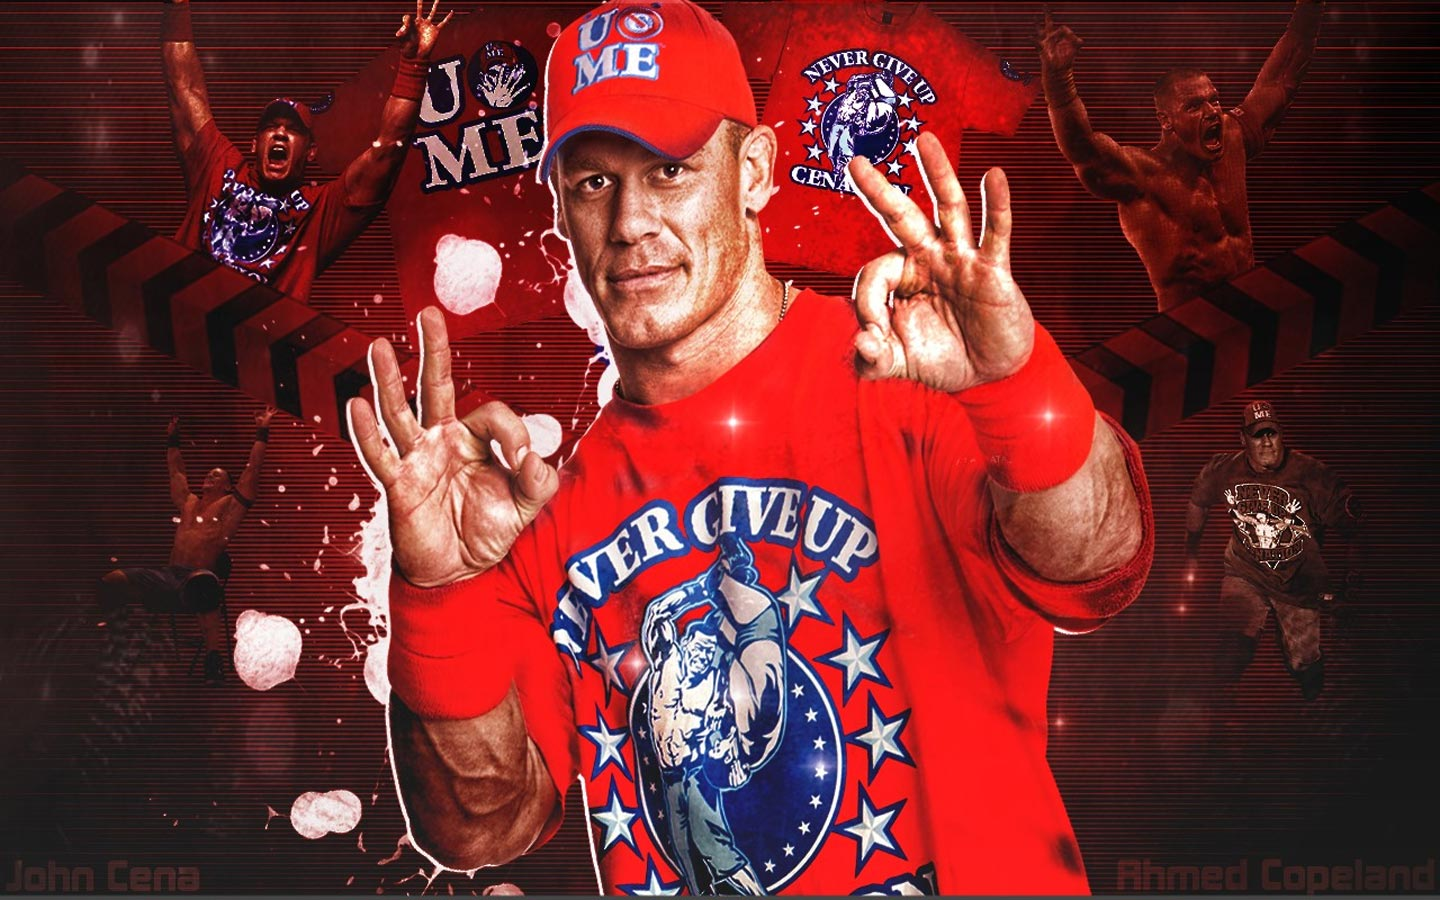 wwe wallpaper 1280x1024 jhone chena - photo #38